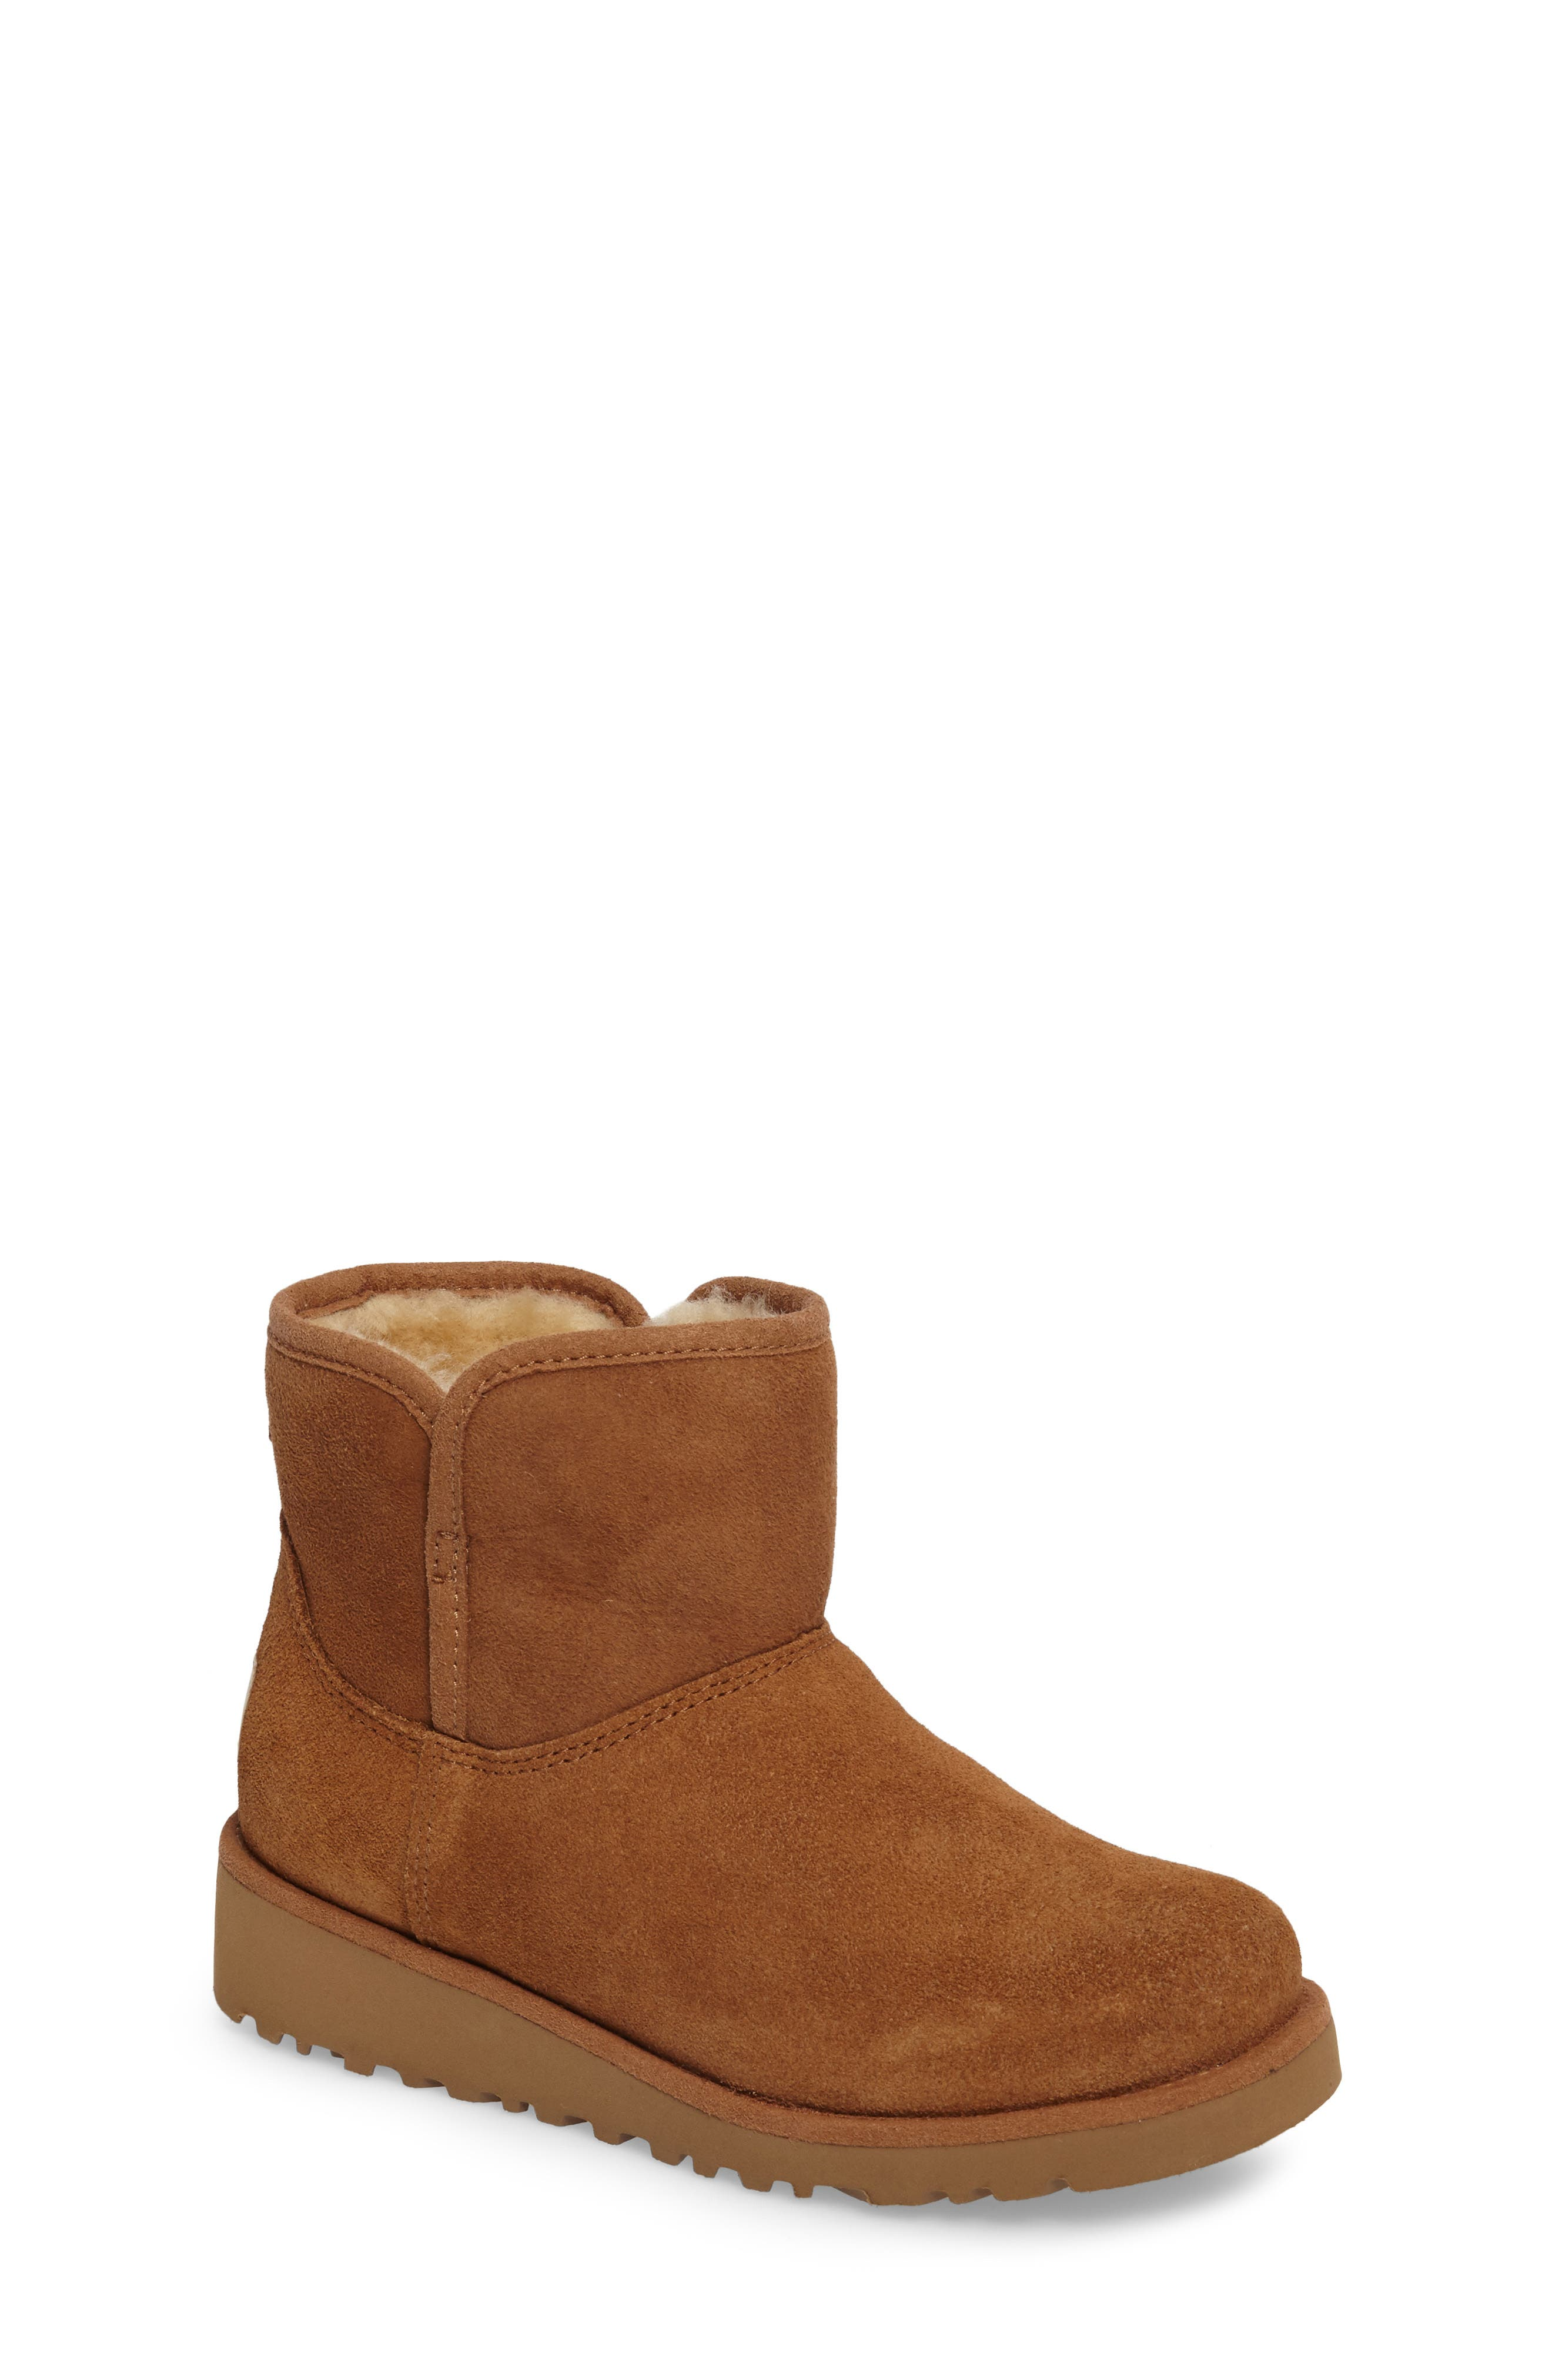 Katalina II Water-Resistant Genuine Shearling Bootie,                         Main,                         color, Chestnut